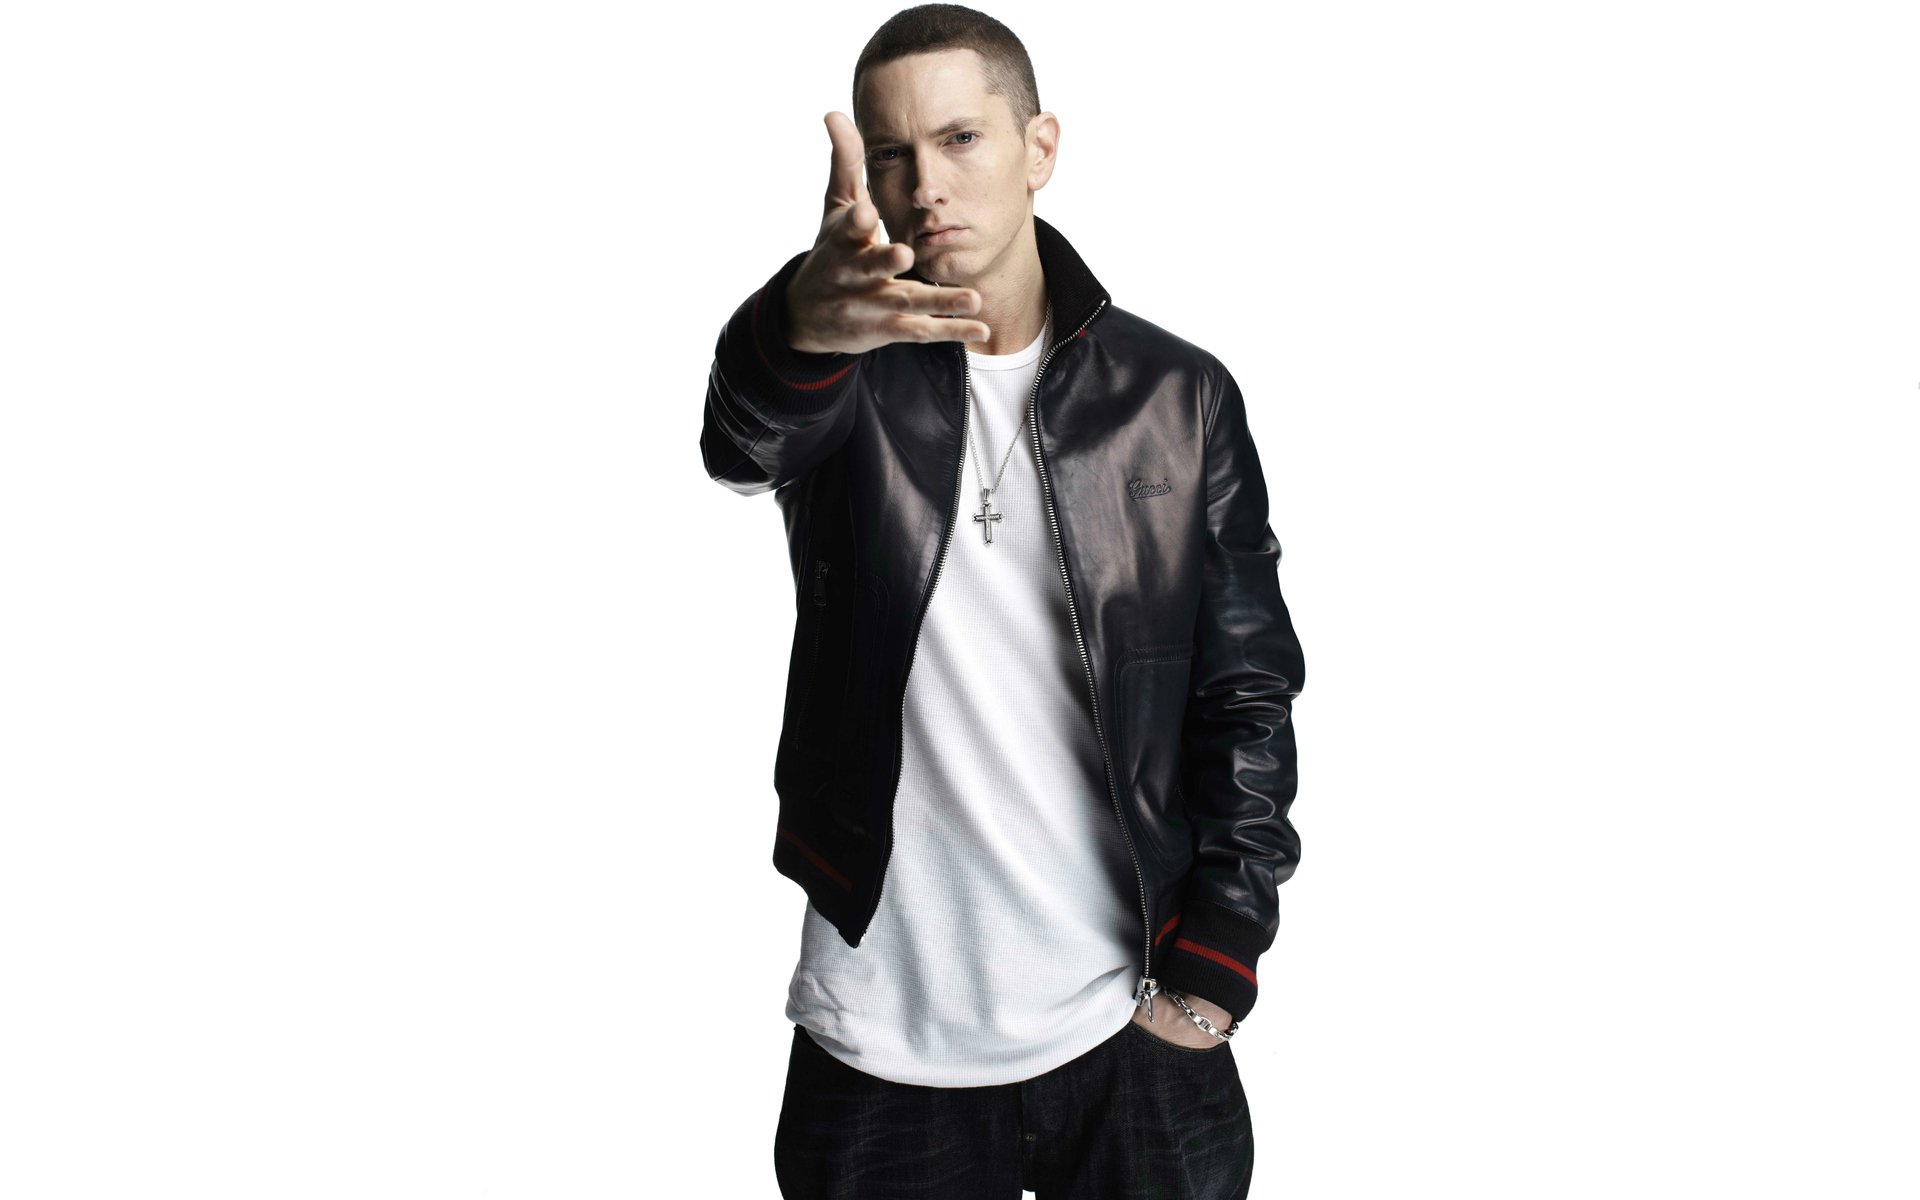 Eminem wallpaper full hd   SF Wallpaper 1920x1200